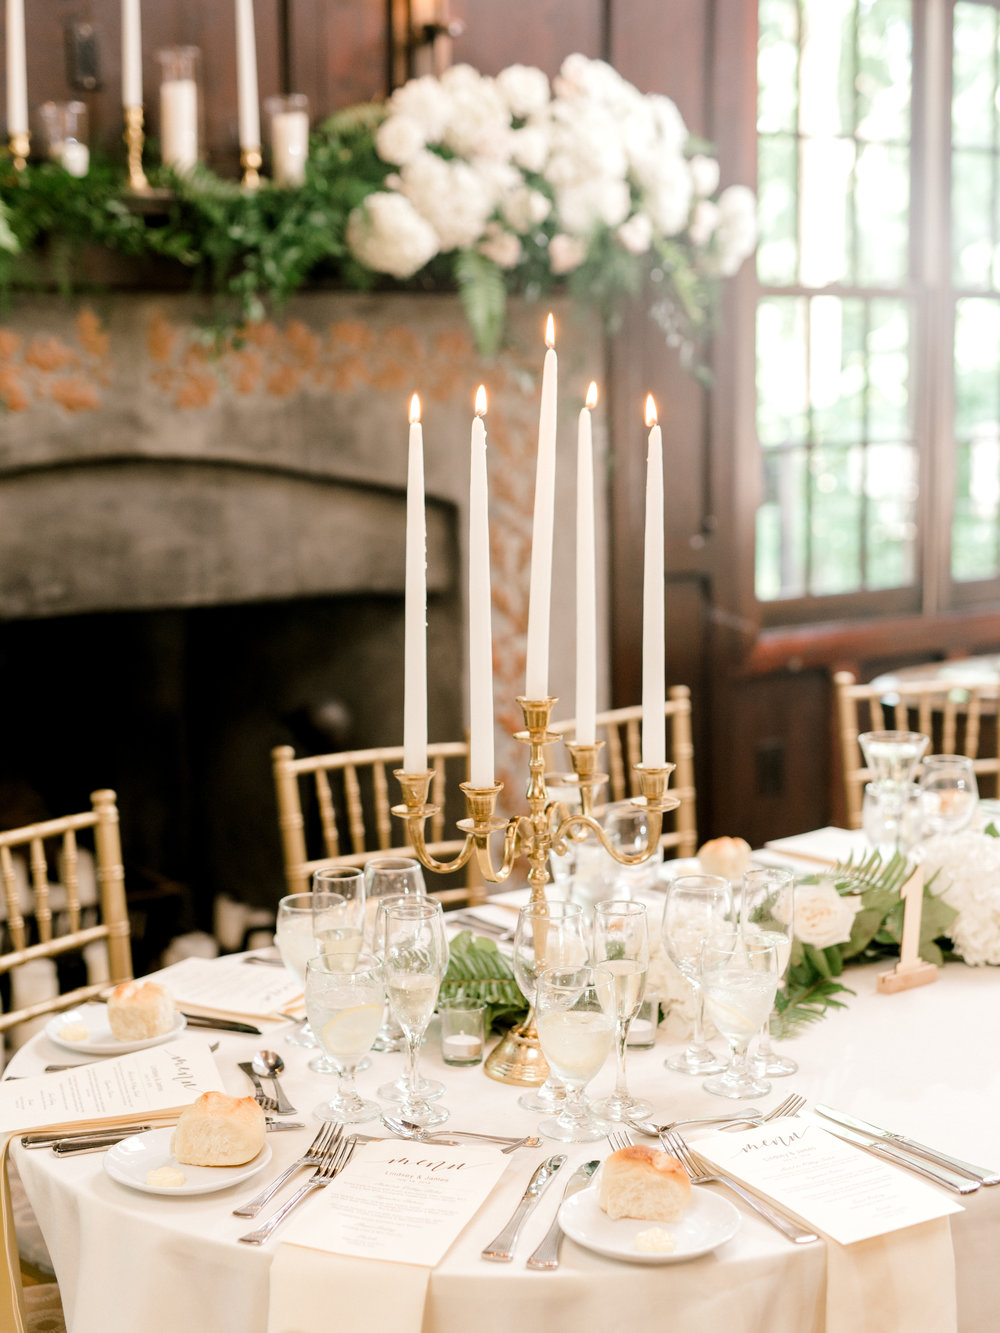 Tall white taper candles in a gold candlestick holder on add a touch of elegance and opulence to the tables of this bright and modern summer wedding at Hotel du Village.